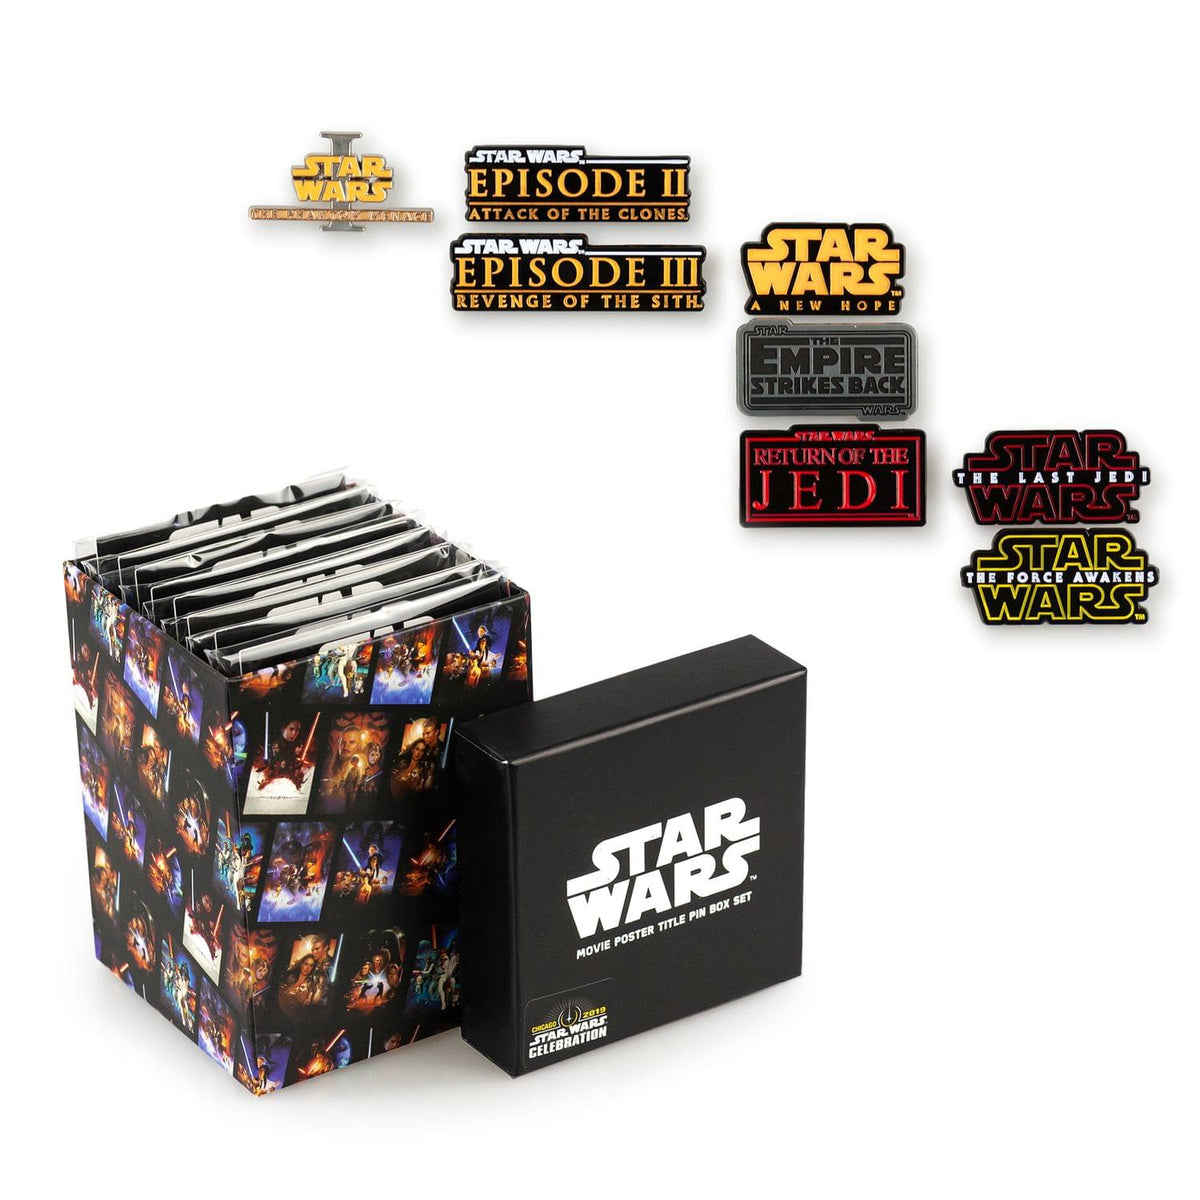 Star Wars Movie Title Pin Collection | Exclusive Poster Title Pin From Each Film